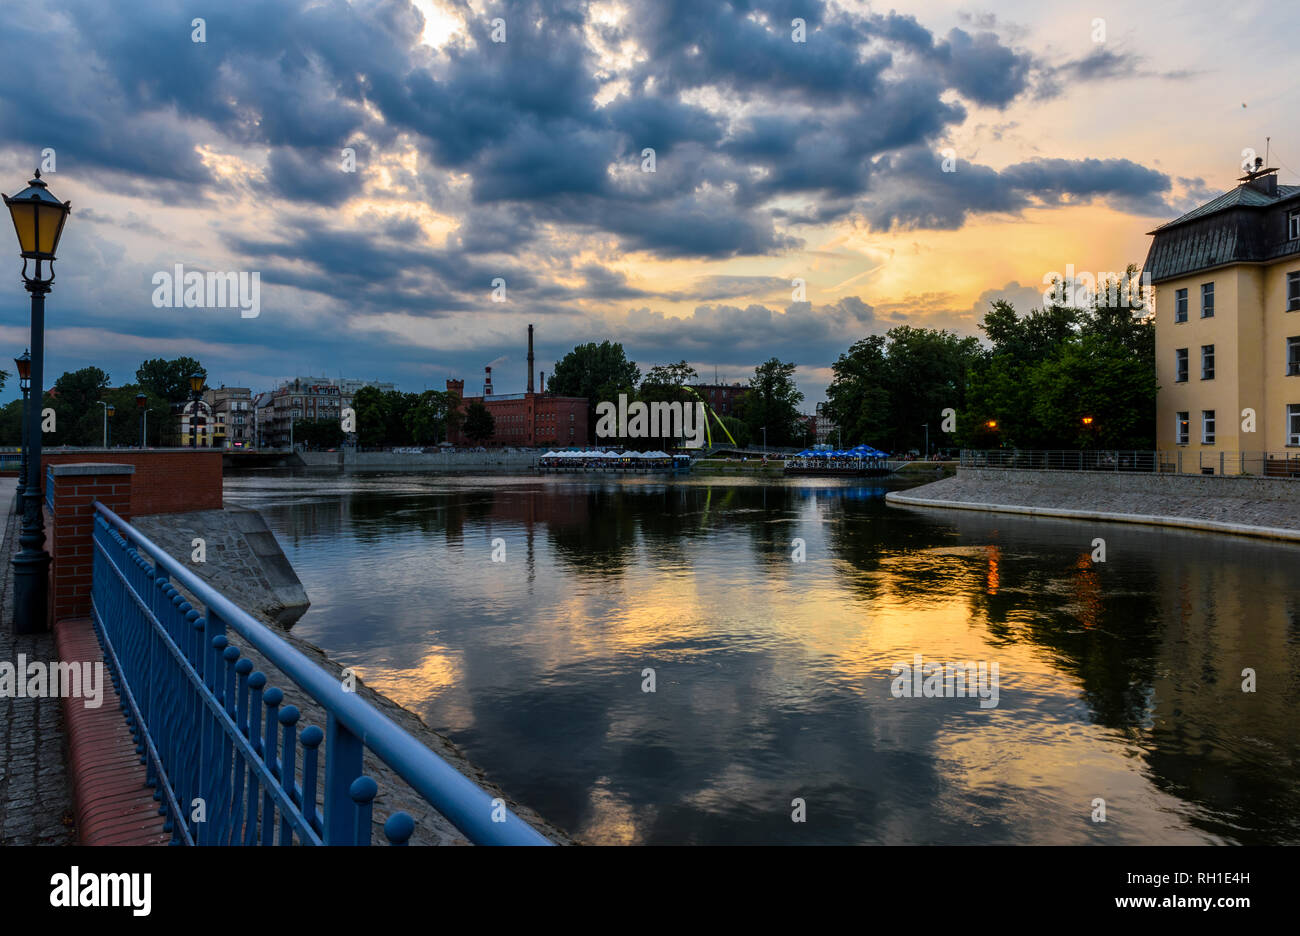 View on the islands (Slodowa) in Wroclaw, Poland Stock Photo